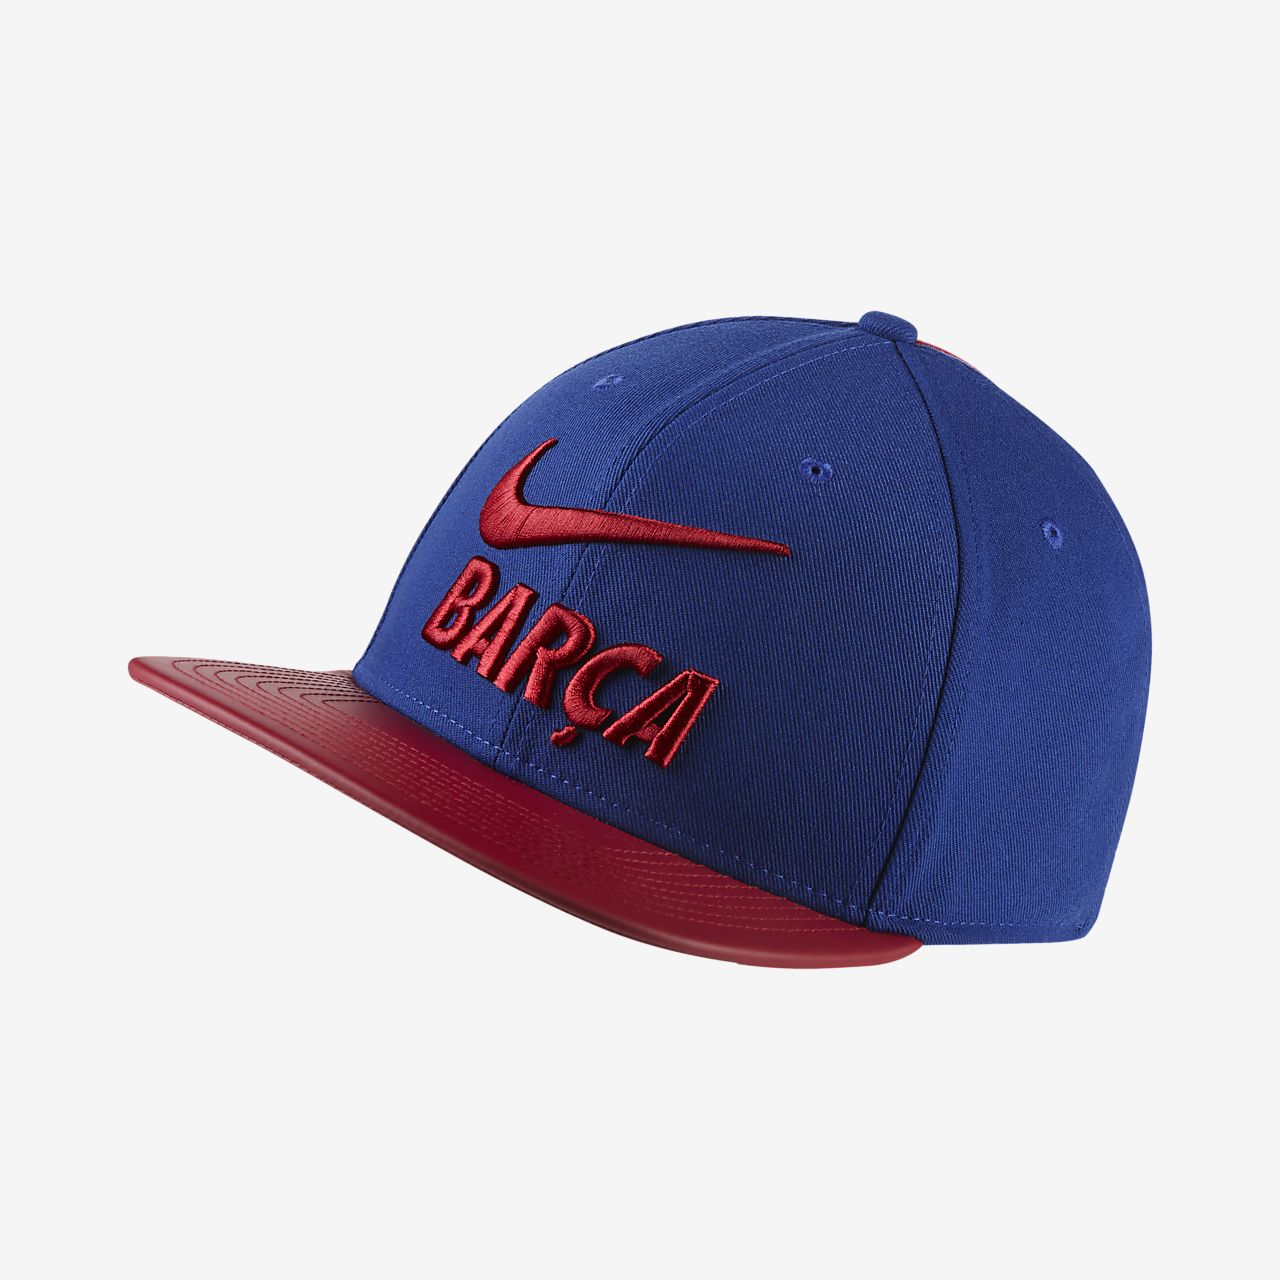 ed4902d0a91 FC Barcelona Adjustable Hat. Nike.com NO